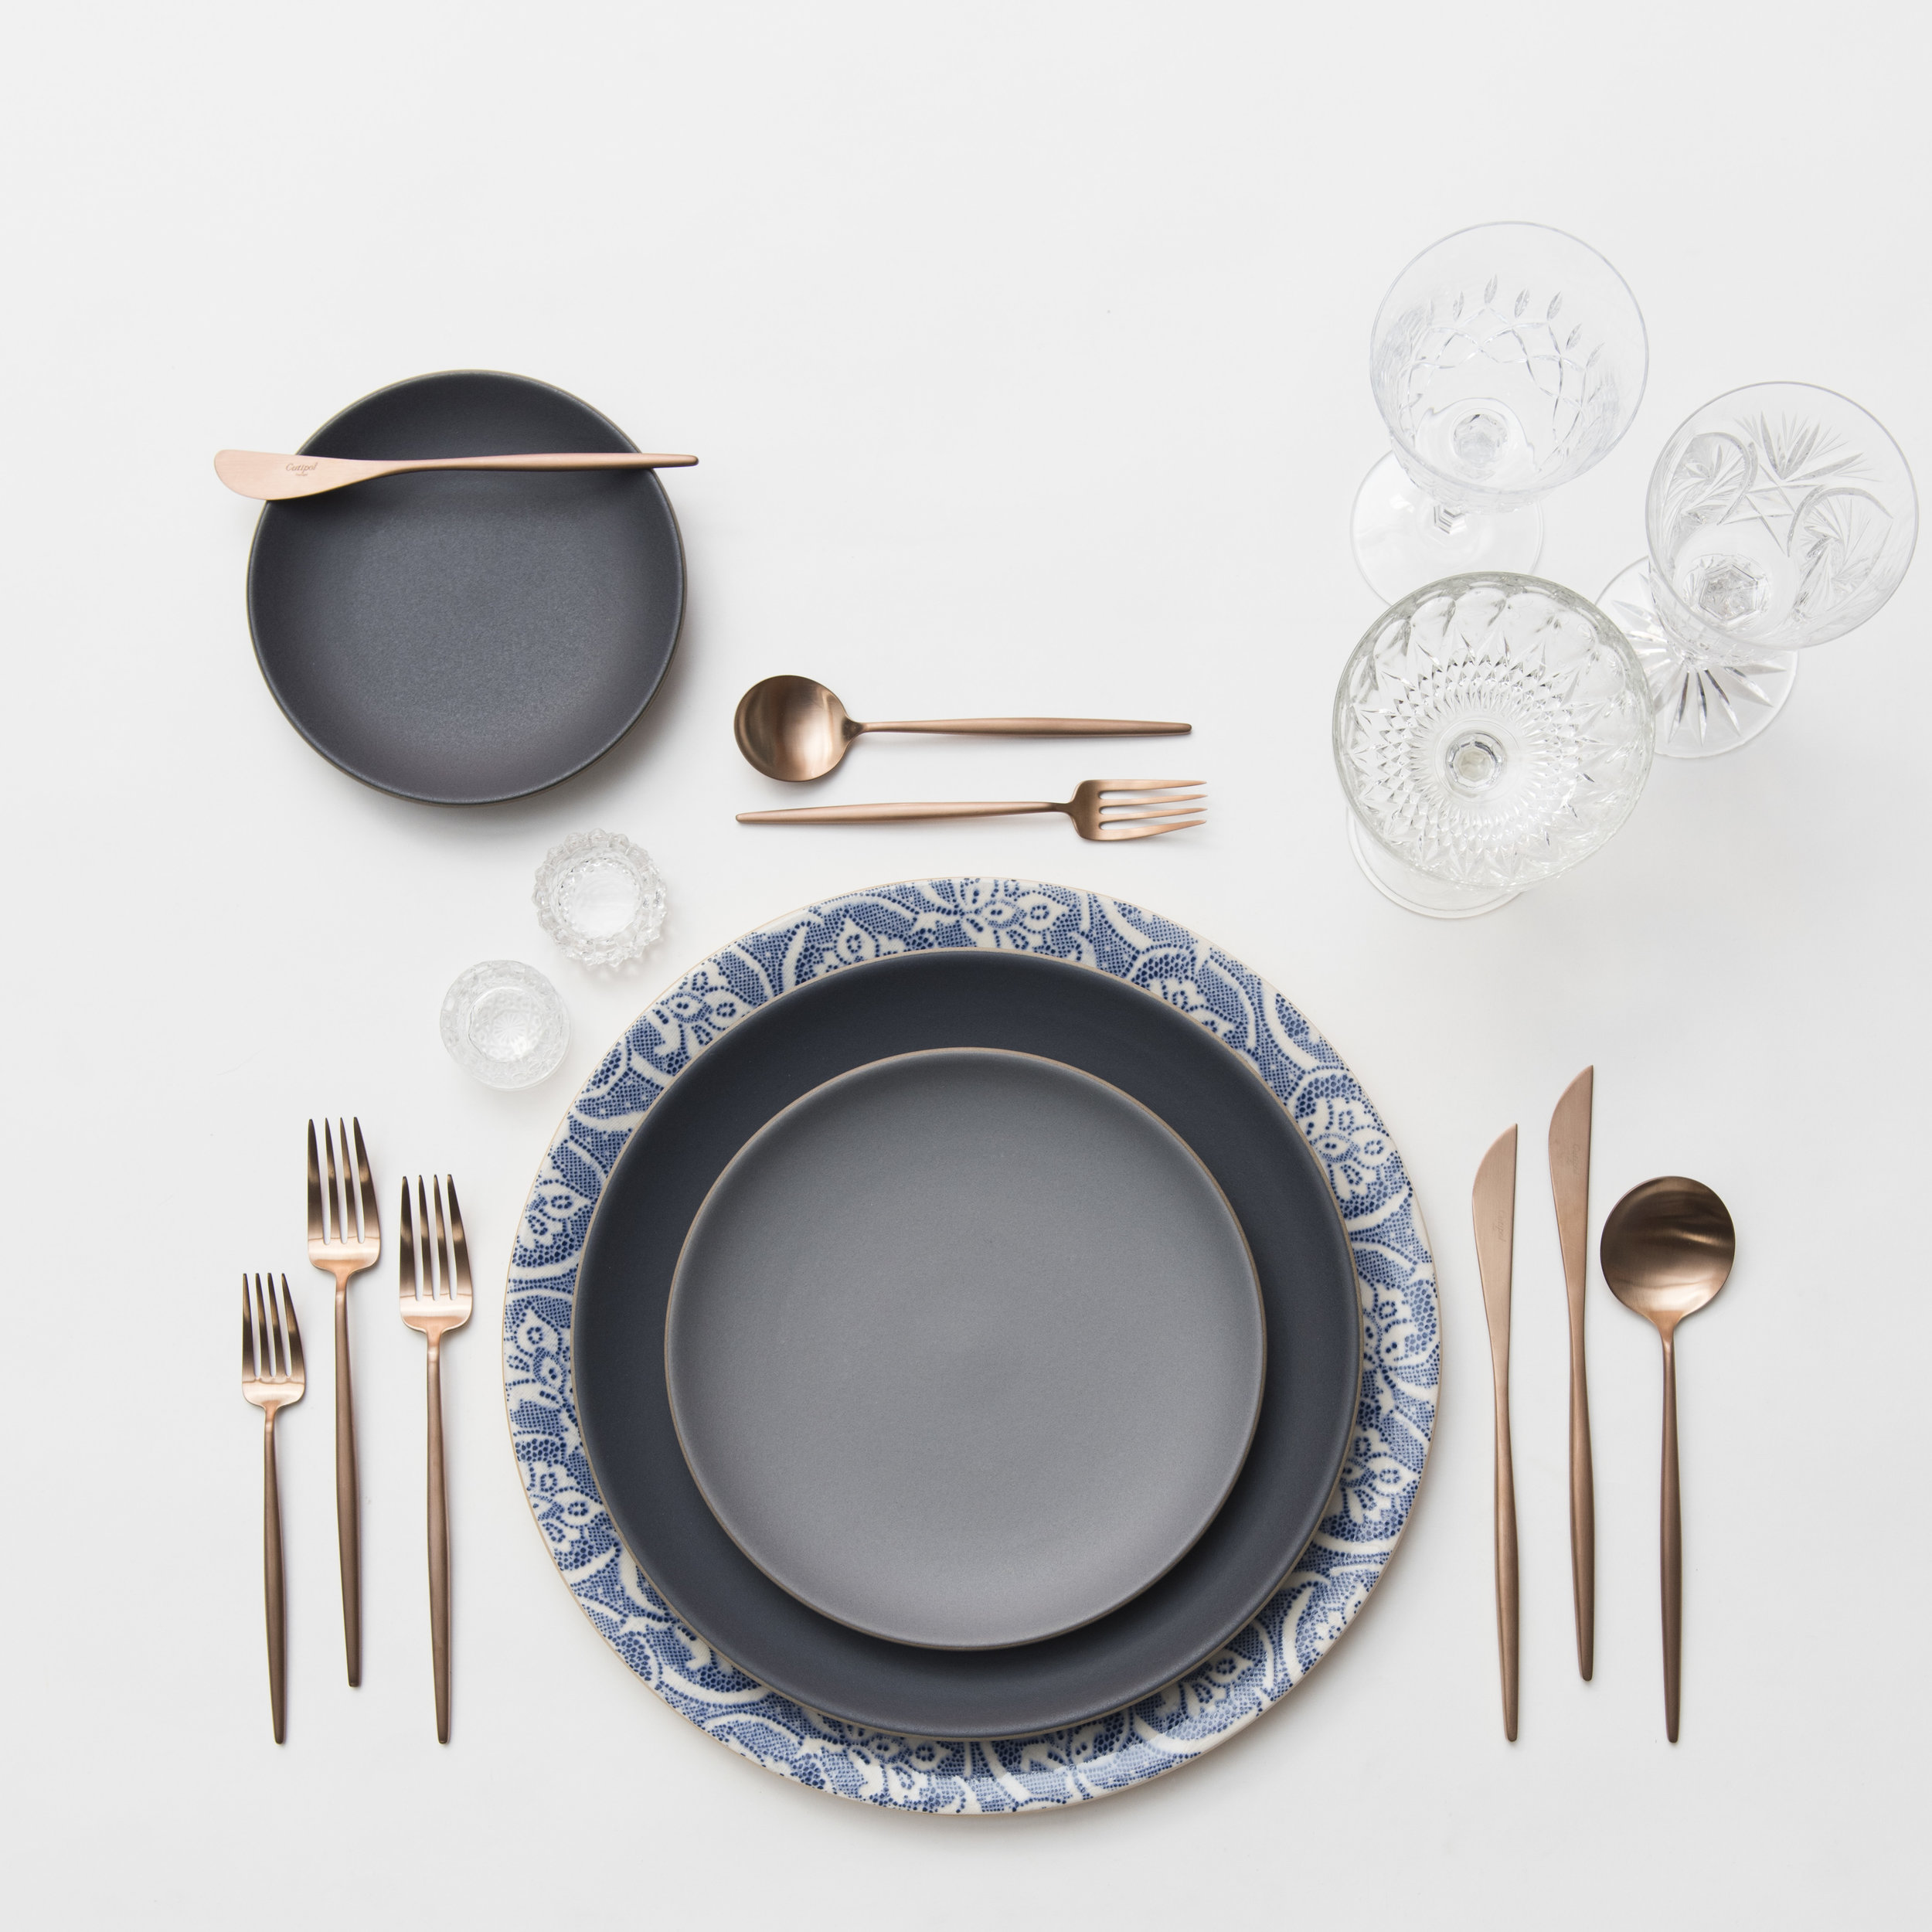 RENT: Blue Fleur de Lis Chargers + Heath Ceramics in Indigo/Slate + Moon Flatware in Brushed Rose Gold + Vintage Cut Crystal Goblets + Vintage Champagne Coupes + Antique Crystal Salt Cellars   SHOP: Moon Flatware in Brushed Rose Gold